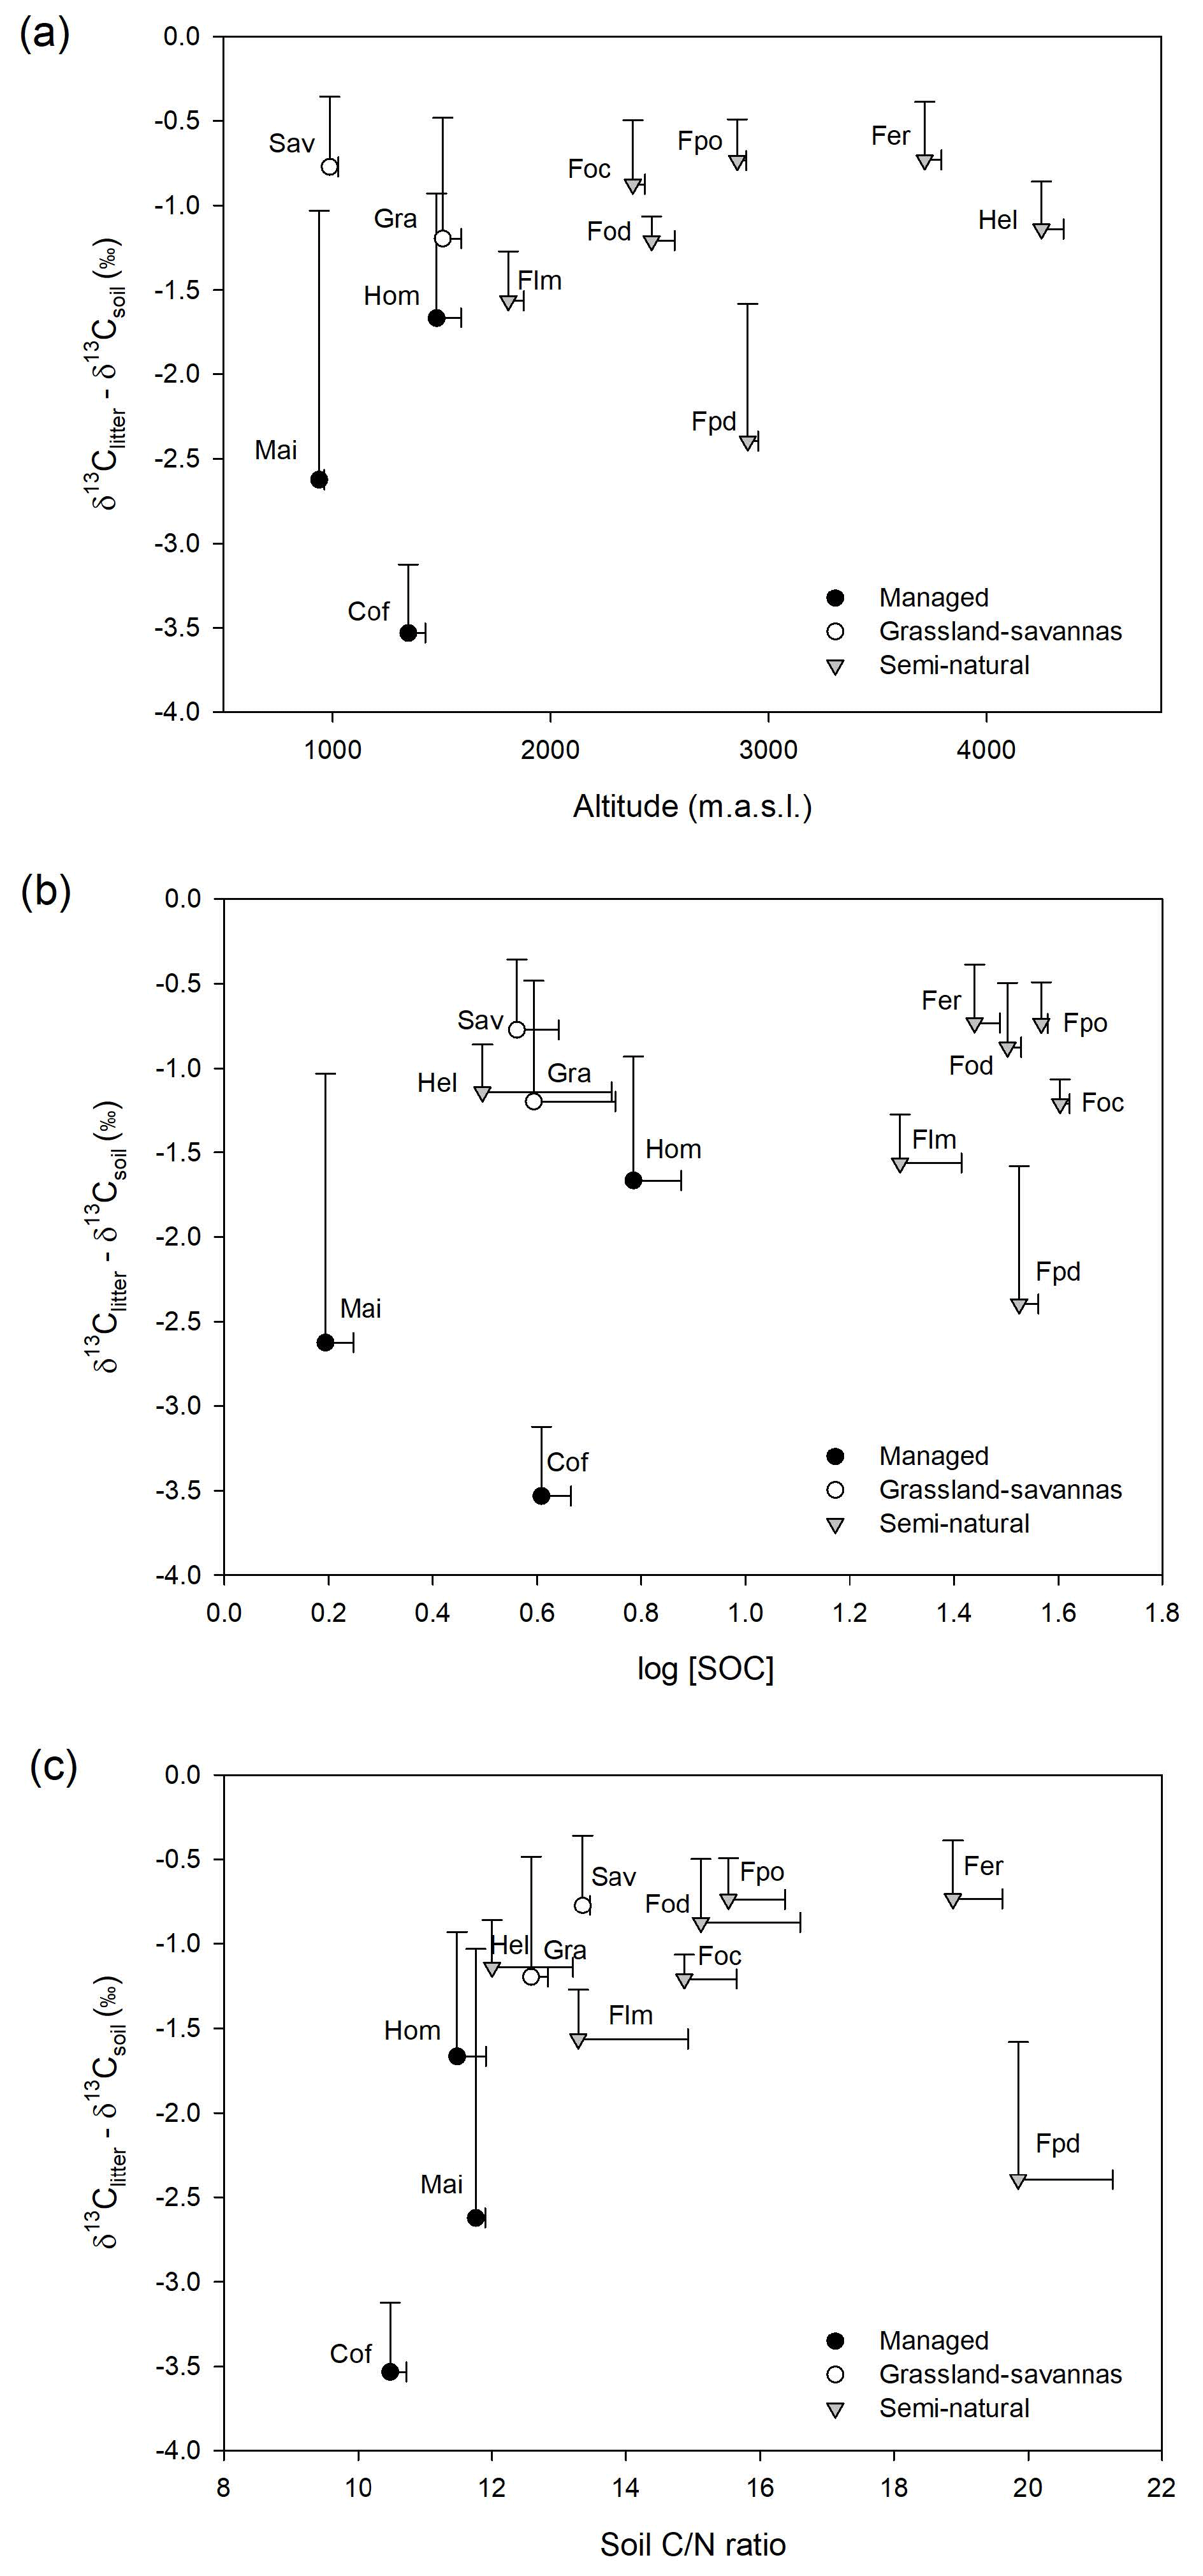 BG - Stable carbon and nitrogen isotopic composition of leaves